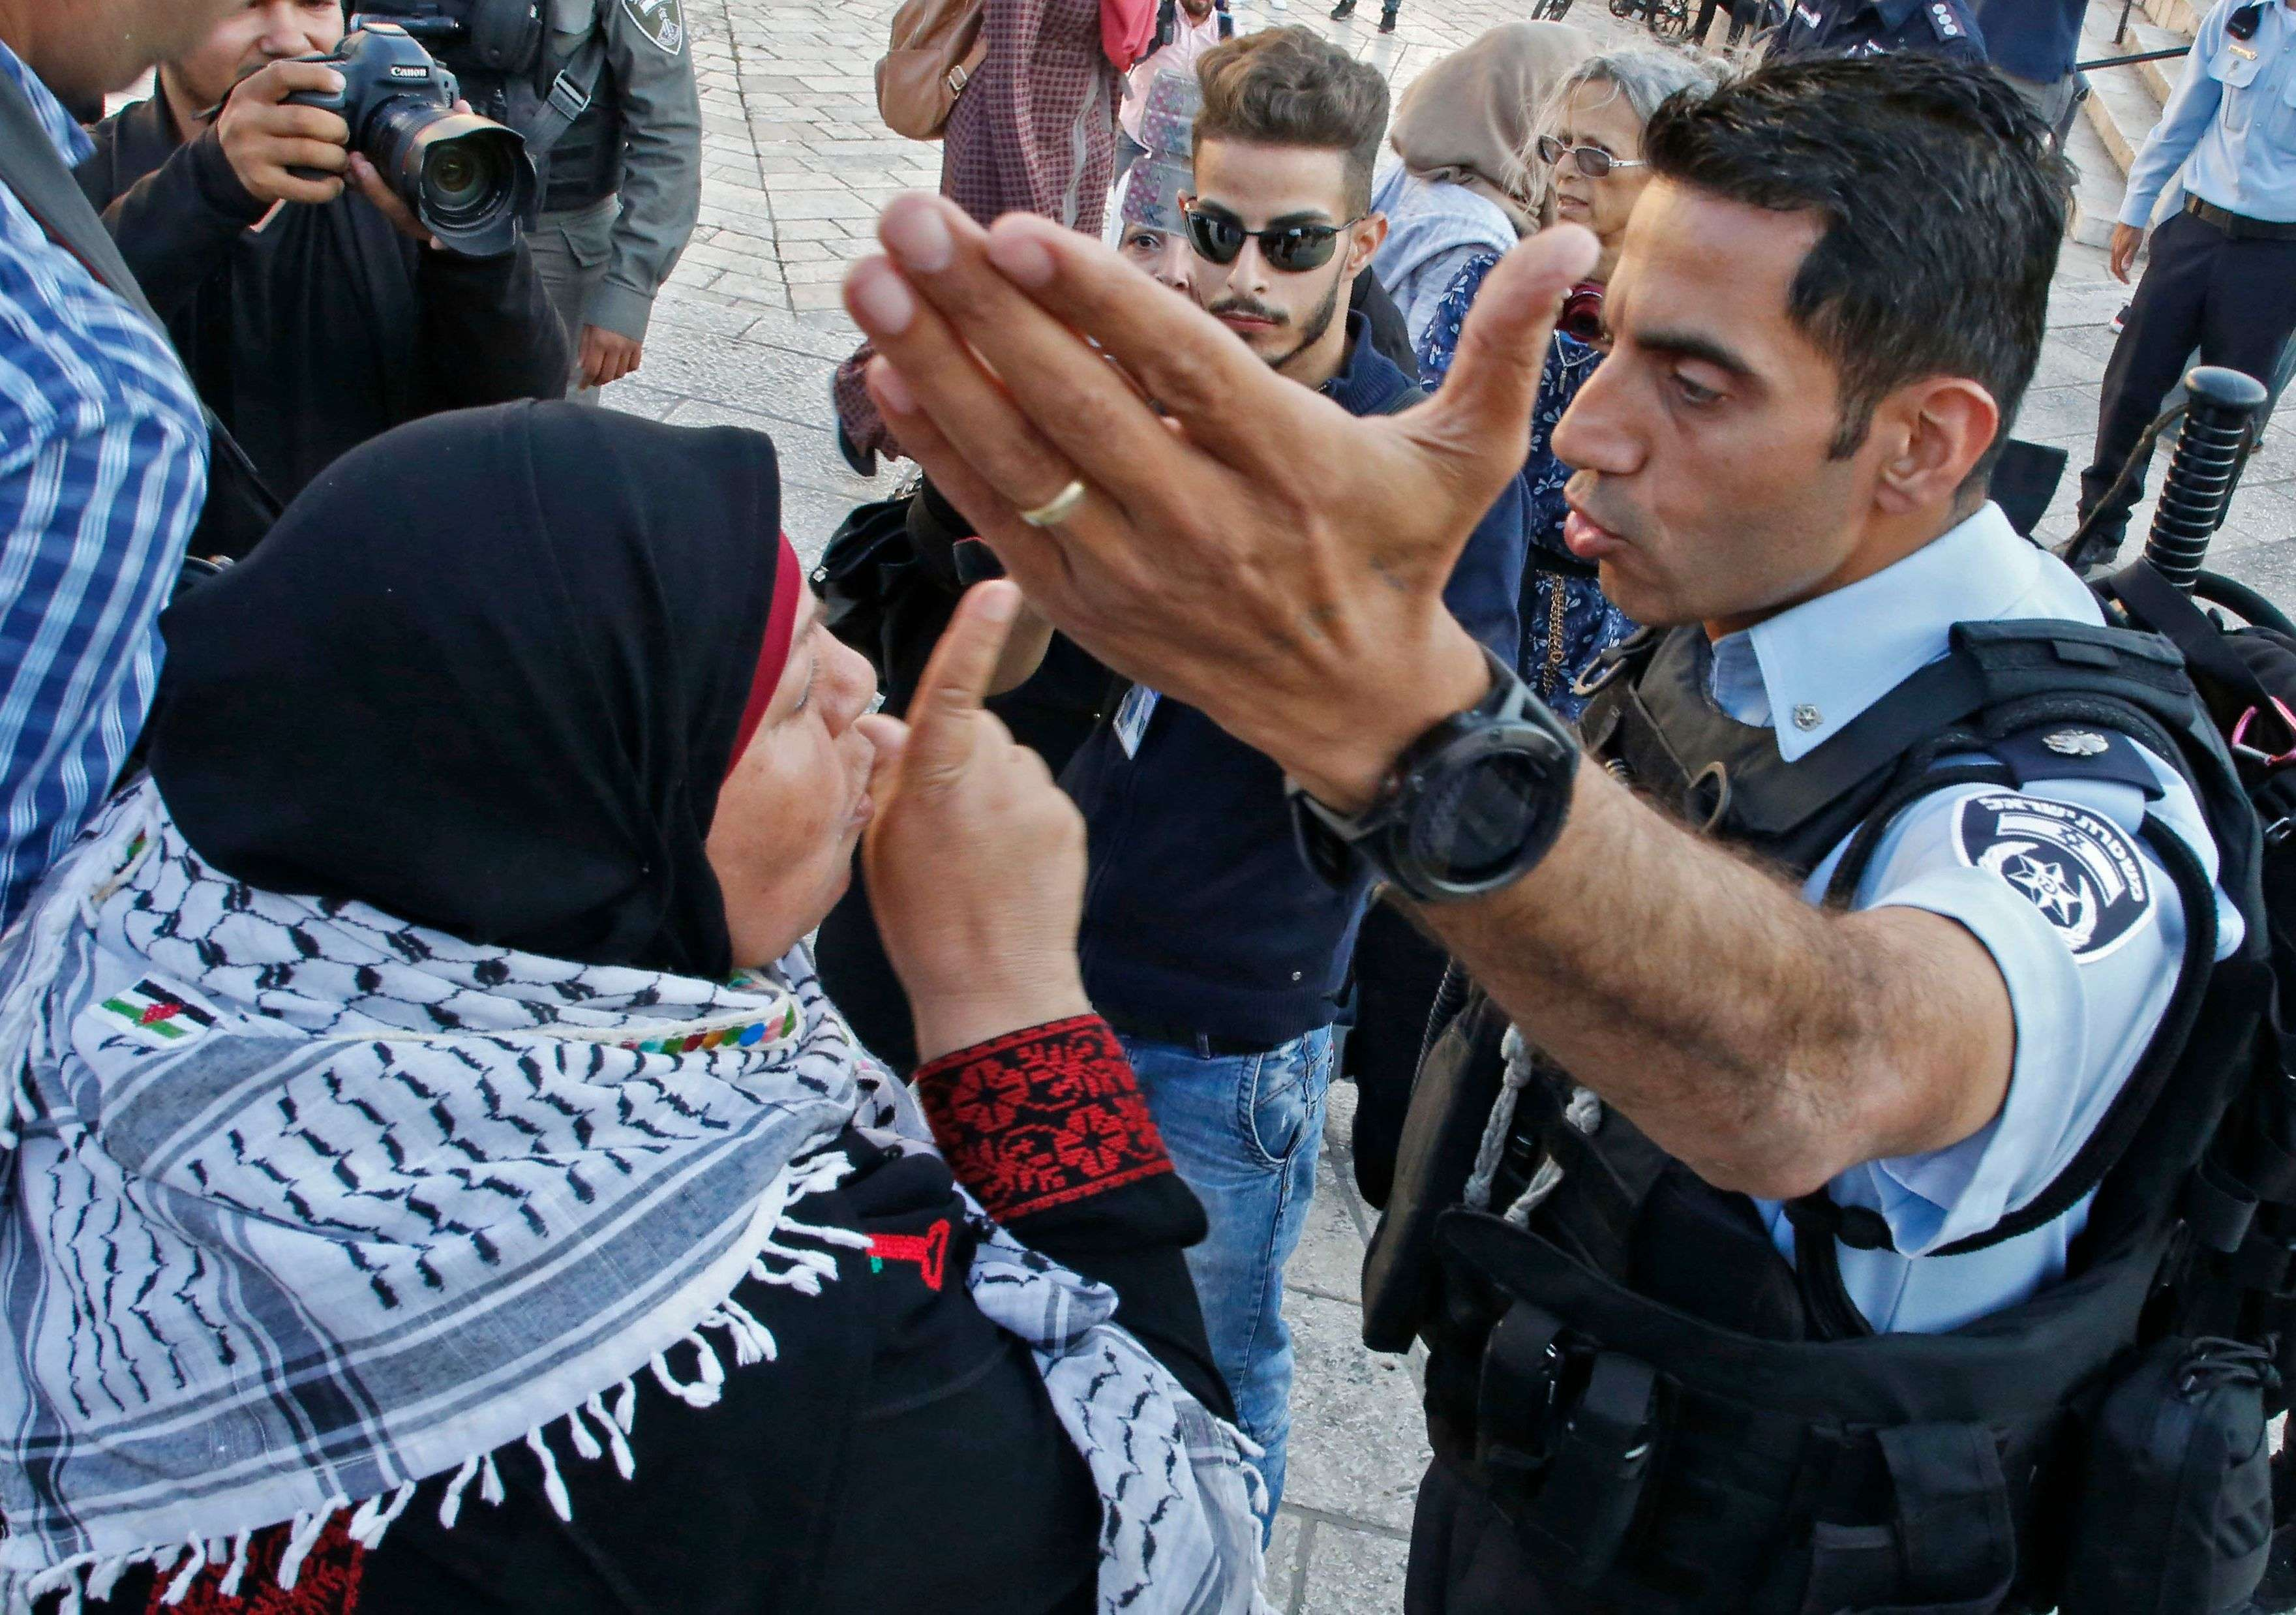 A Palestinian woman argues with a member of the Israeli security forces outside the Damascus Gate in the Old City of Jerusalem, on May 15. (AFP)